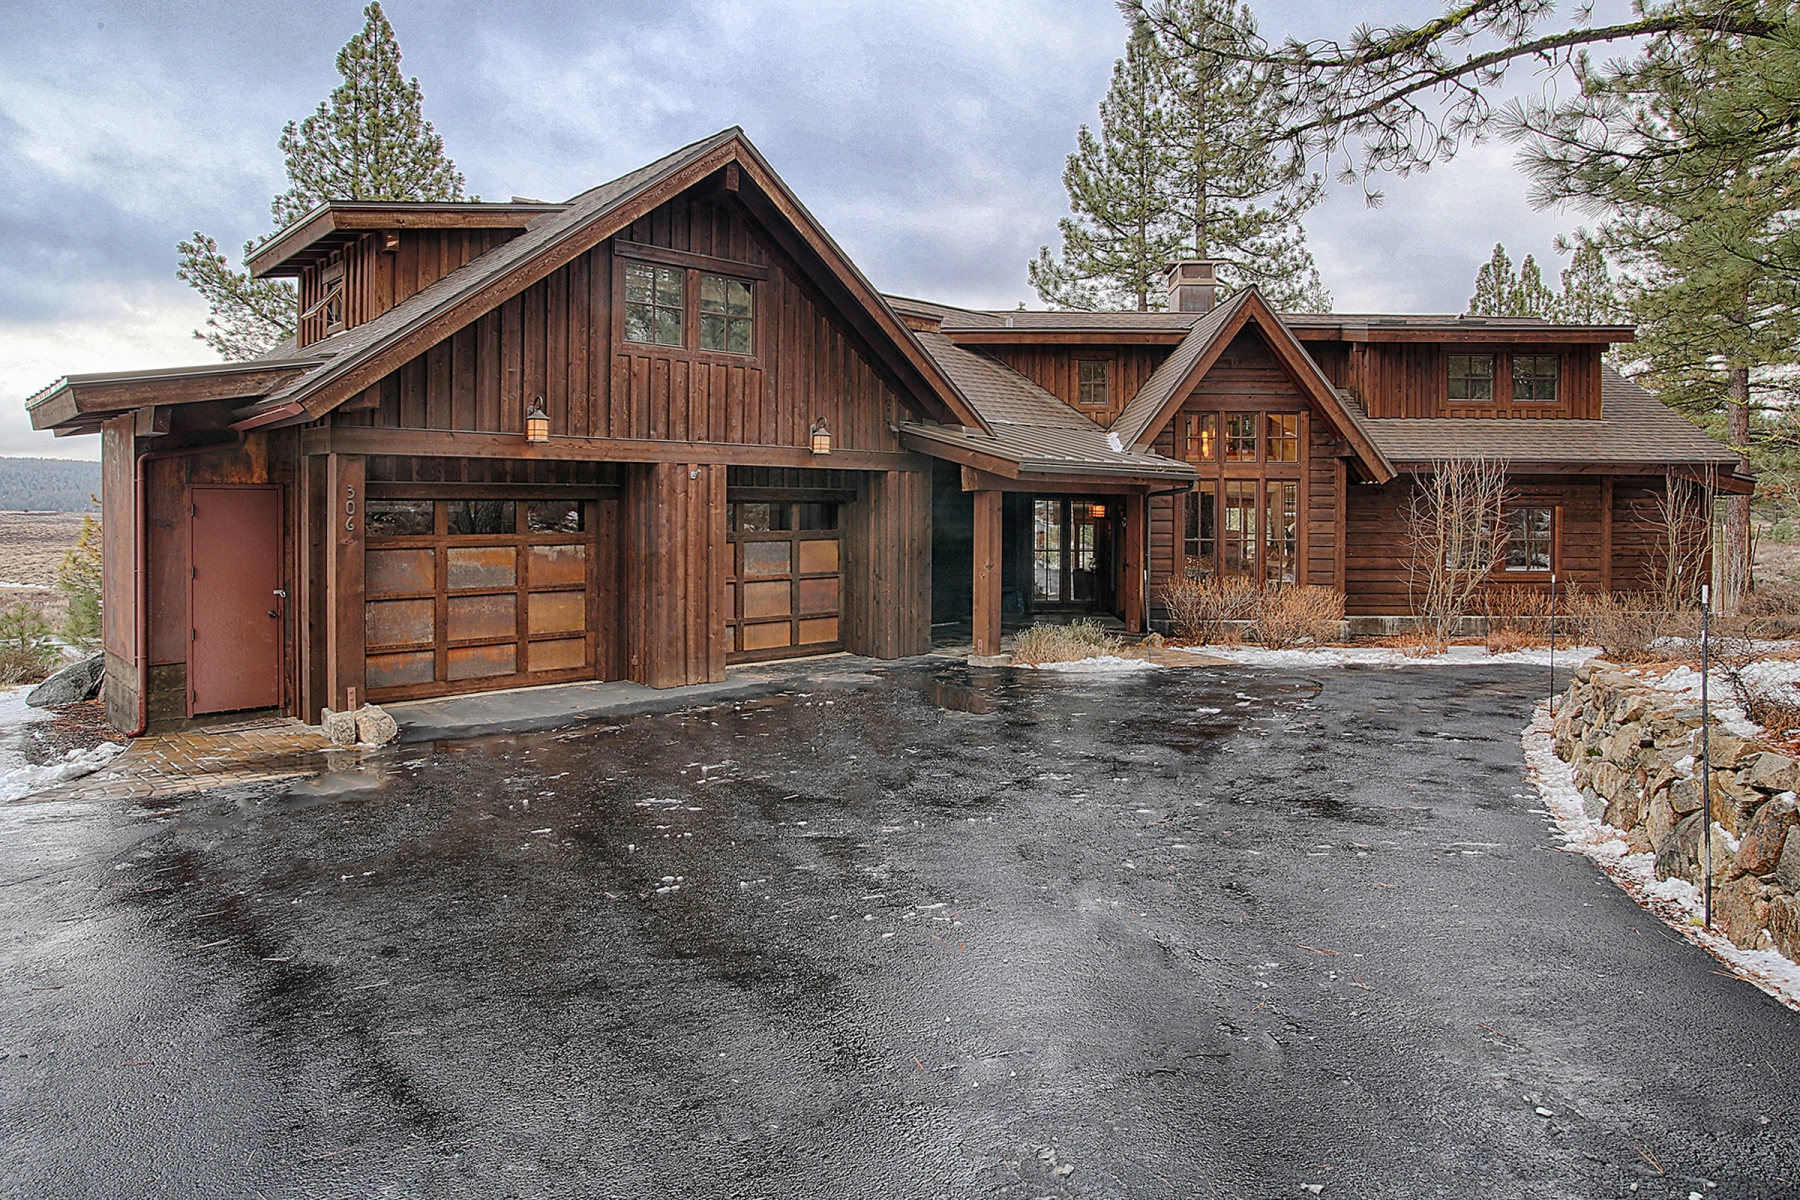 Single Family Home for Sale at 306 Bob Haslem Truckee, California, 96161 United States